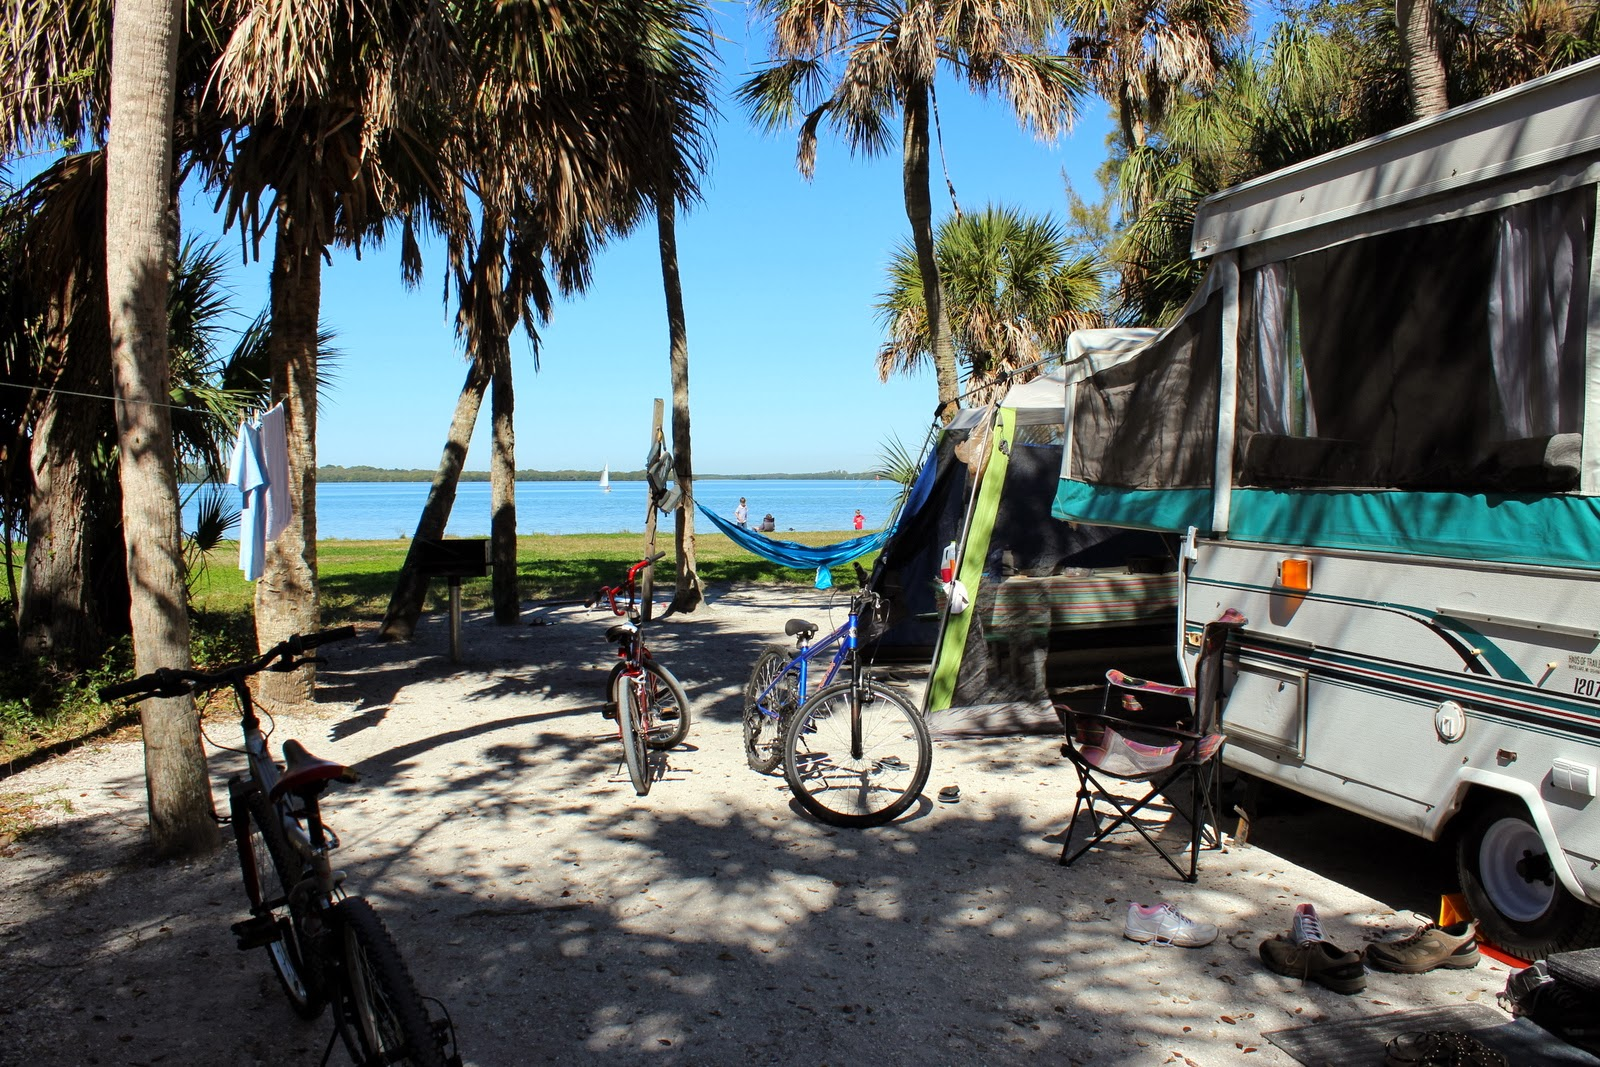 Pop Up camping at Fort De Soto Park, St. Petersburg, FL